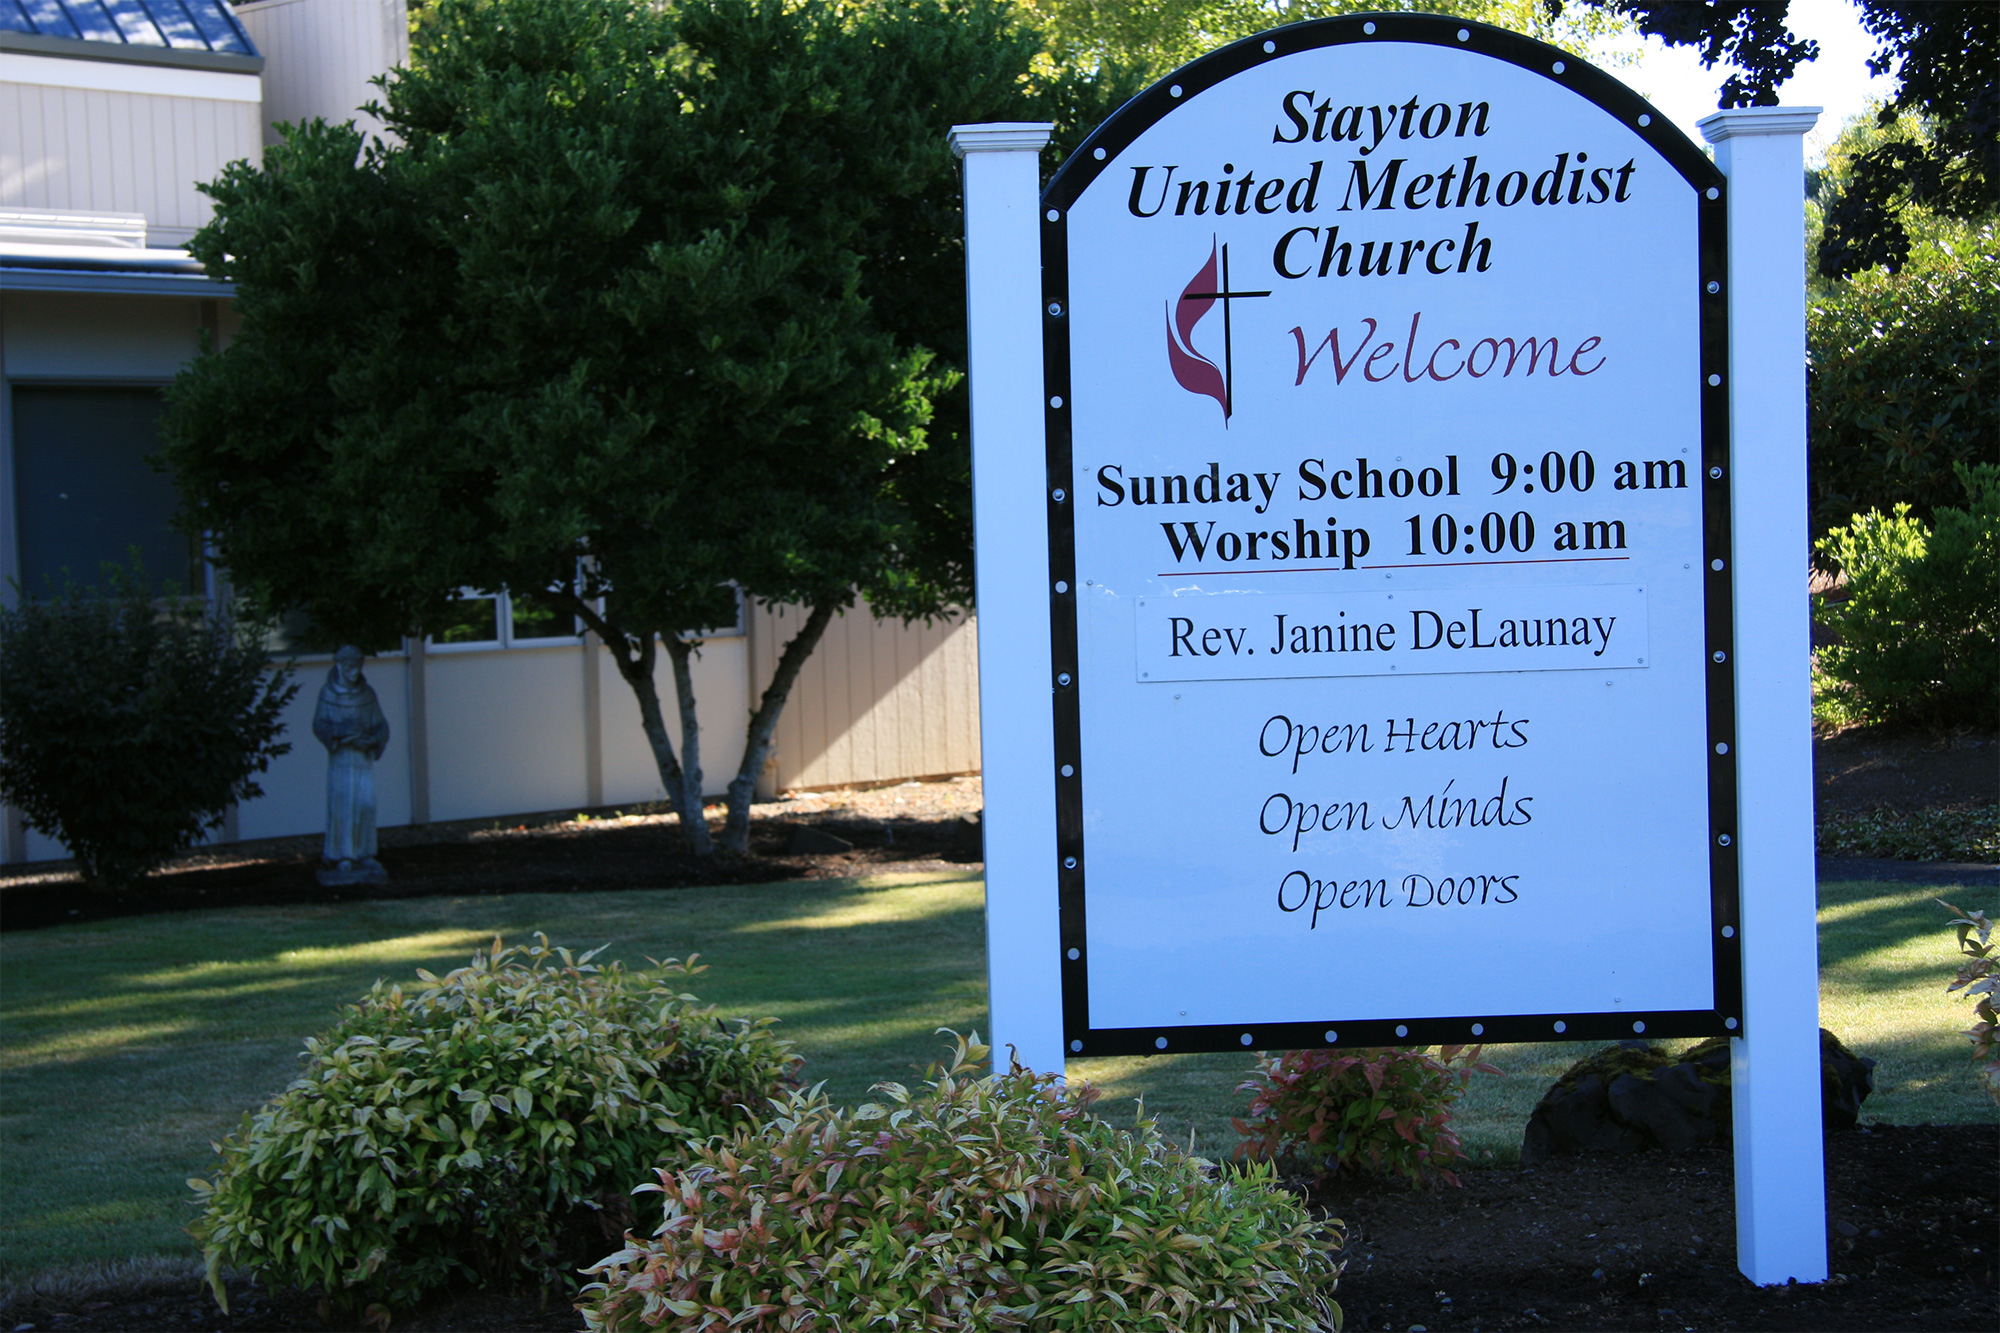 Welcome sign at Stayton United Methodist Church